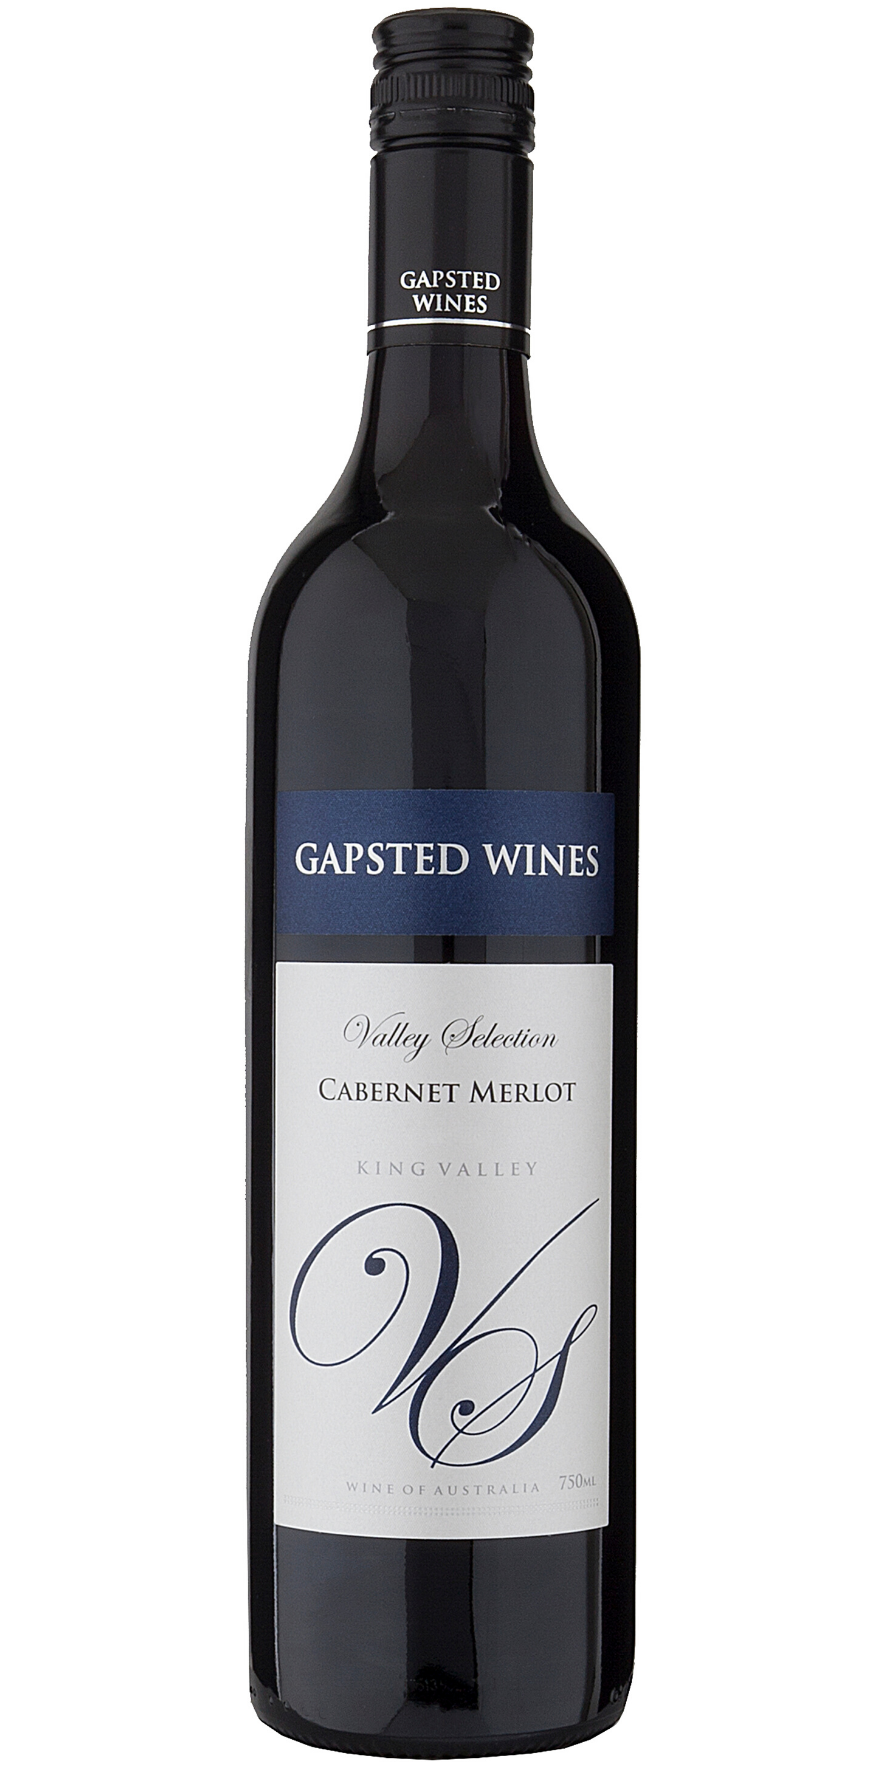 Valley Selection 2018 Cabernet Merlot - Gapsted Wines